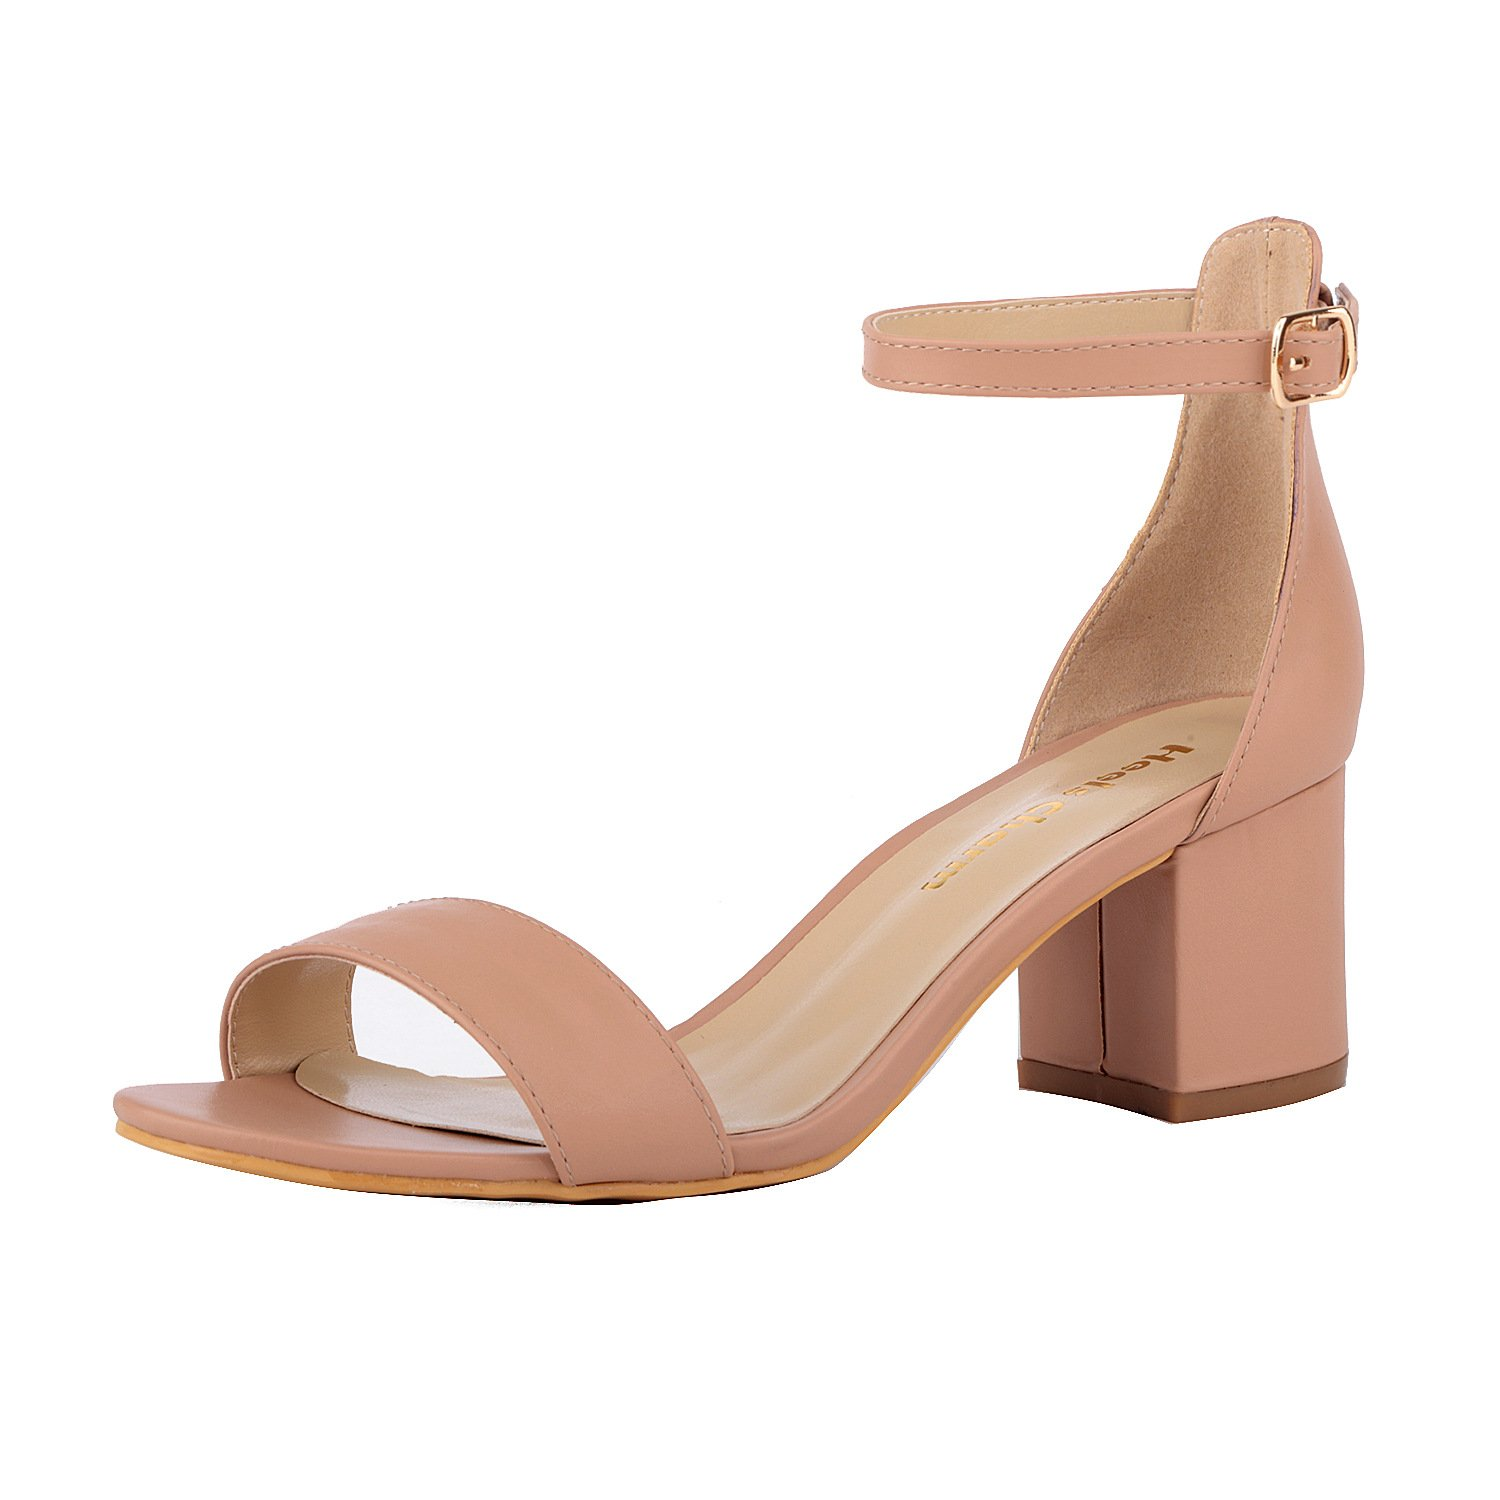 Nude Women's Strappy Chunky Block Low Heeled Sandals 2 Inch Open Toe Ankle Strap High Heel Dress Sandals Daily Work Party shoes